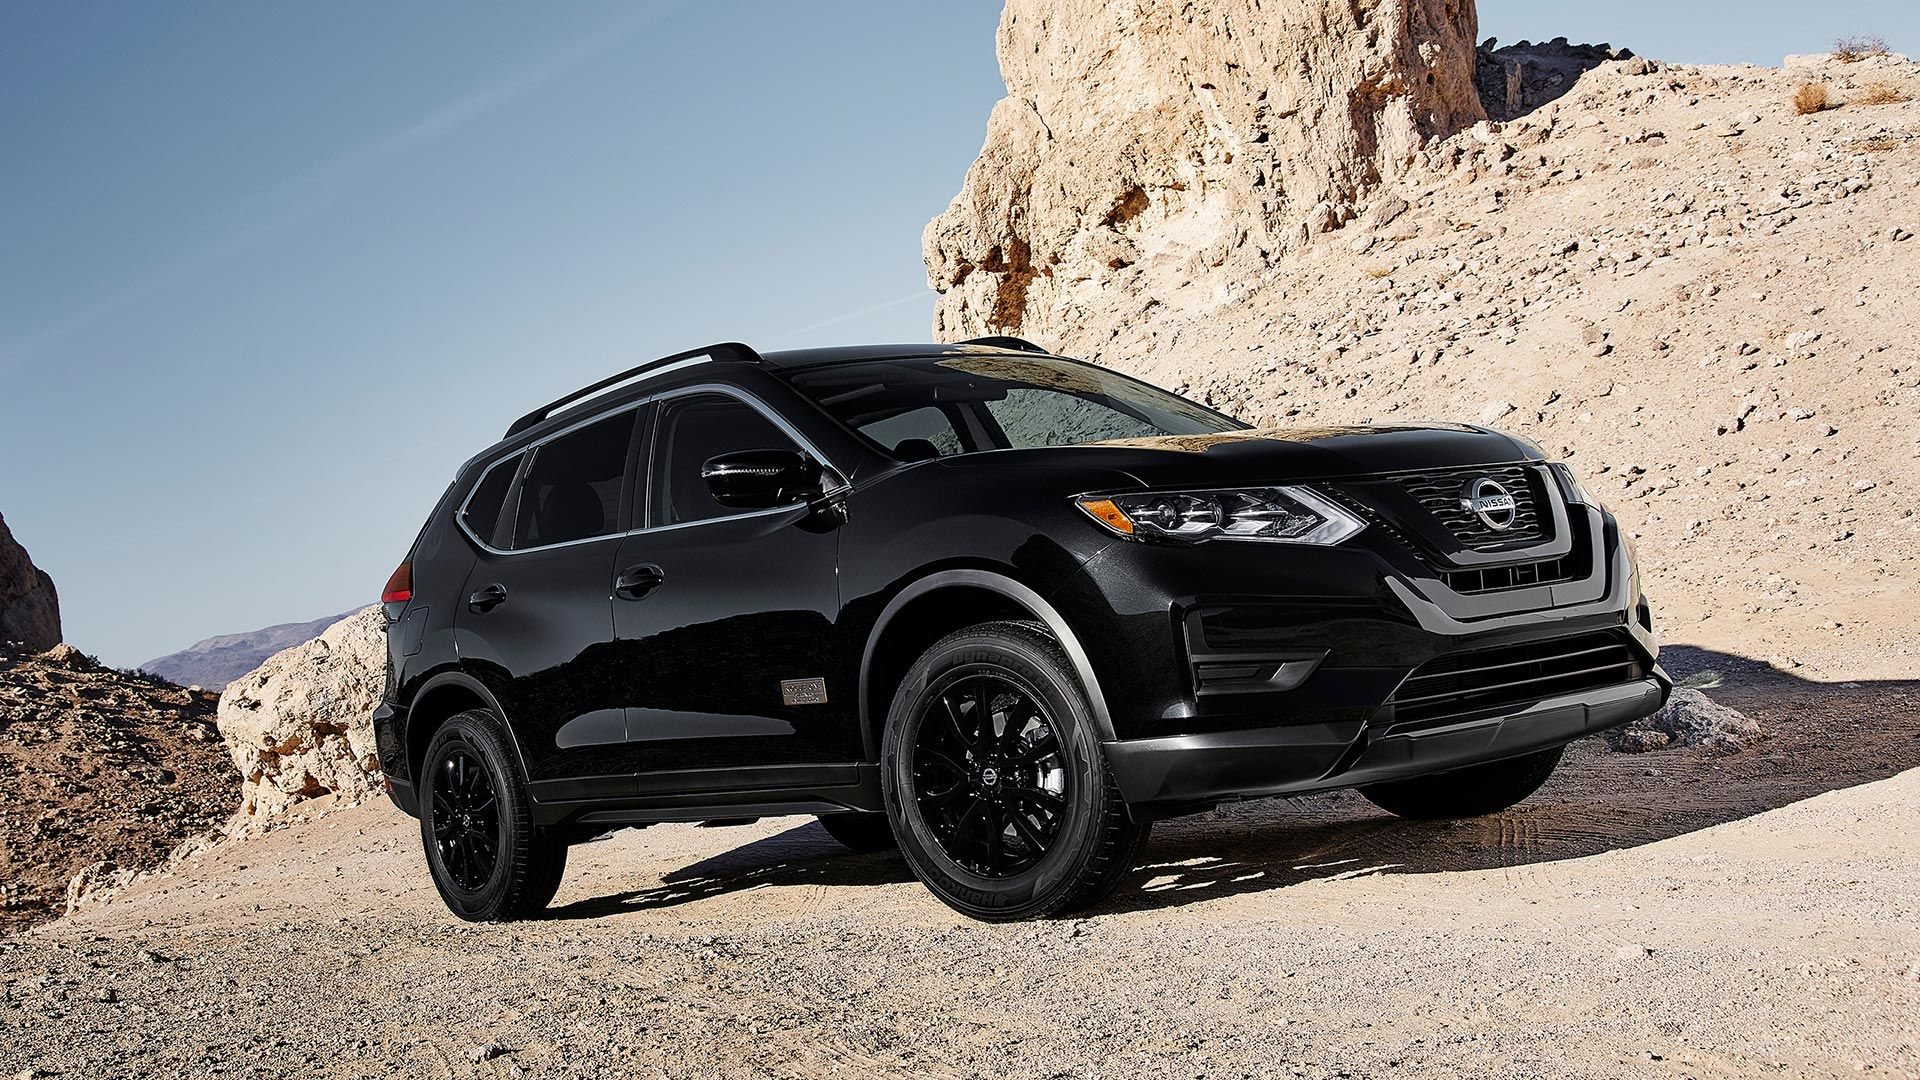 2017 nissan rogue one star wars limited edition in magnetic black 2017 nissan rogue one star wars limited edition in magnetic black nissan usa vanachro Image collections